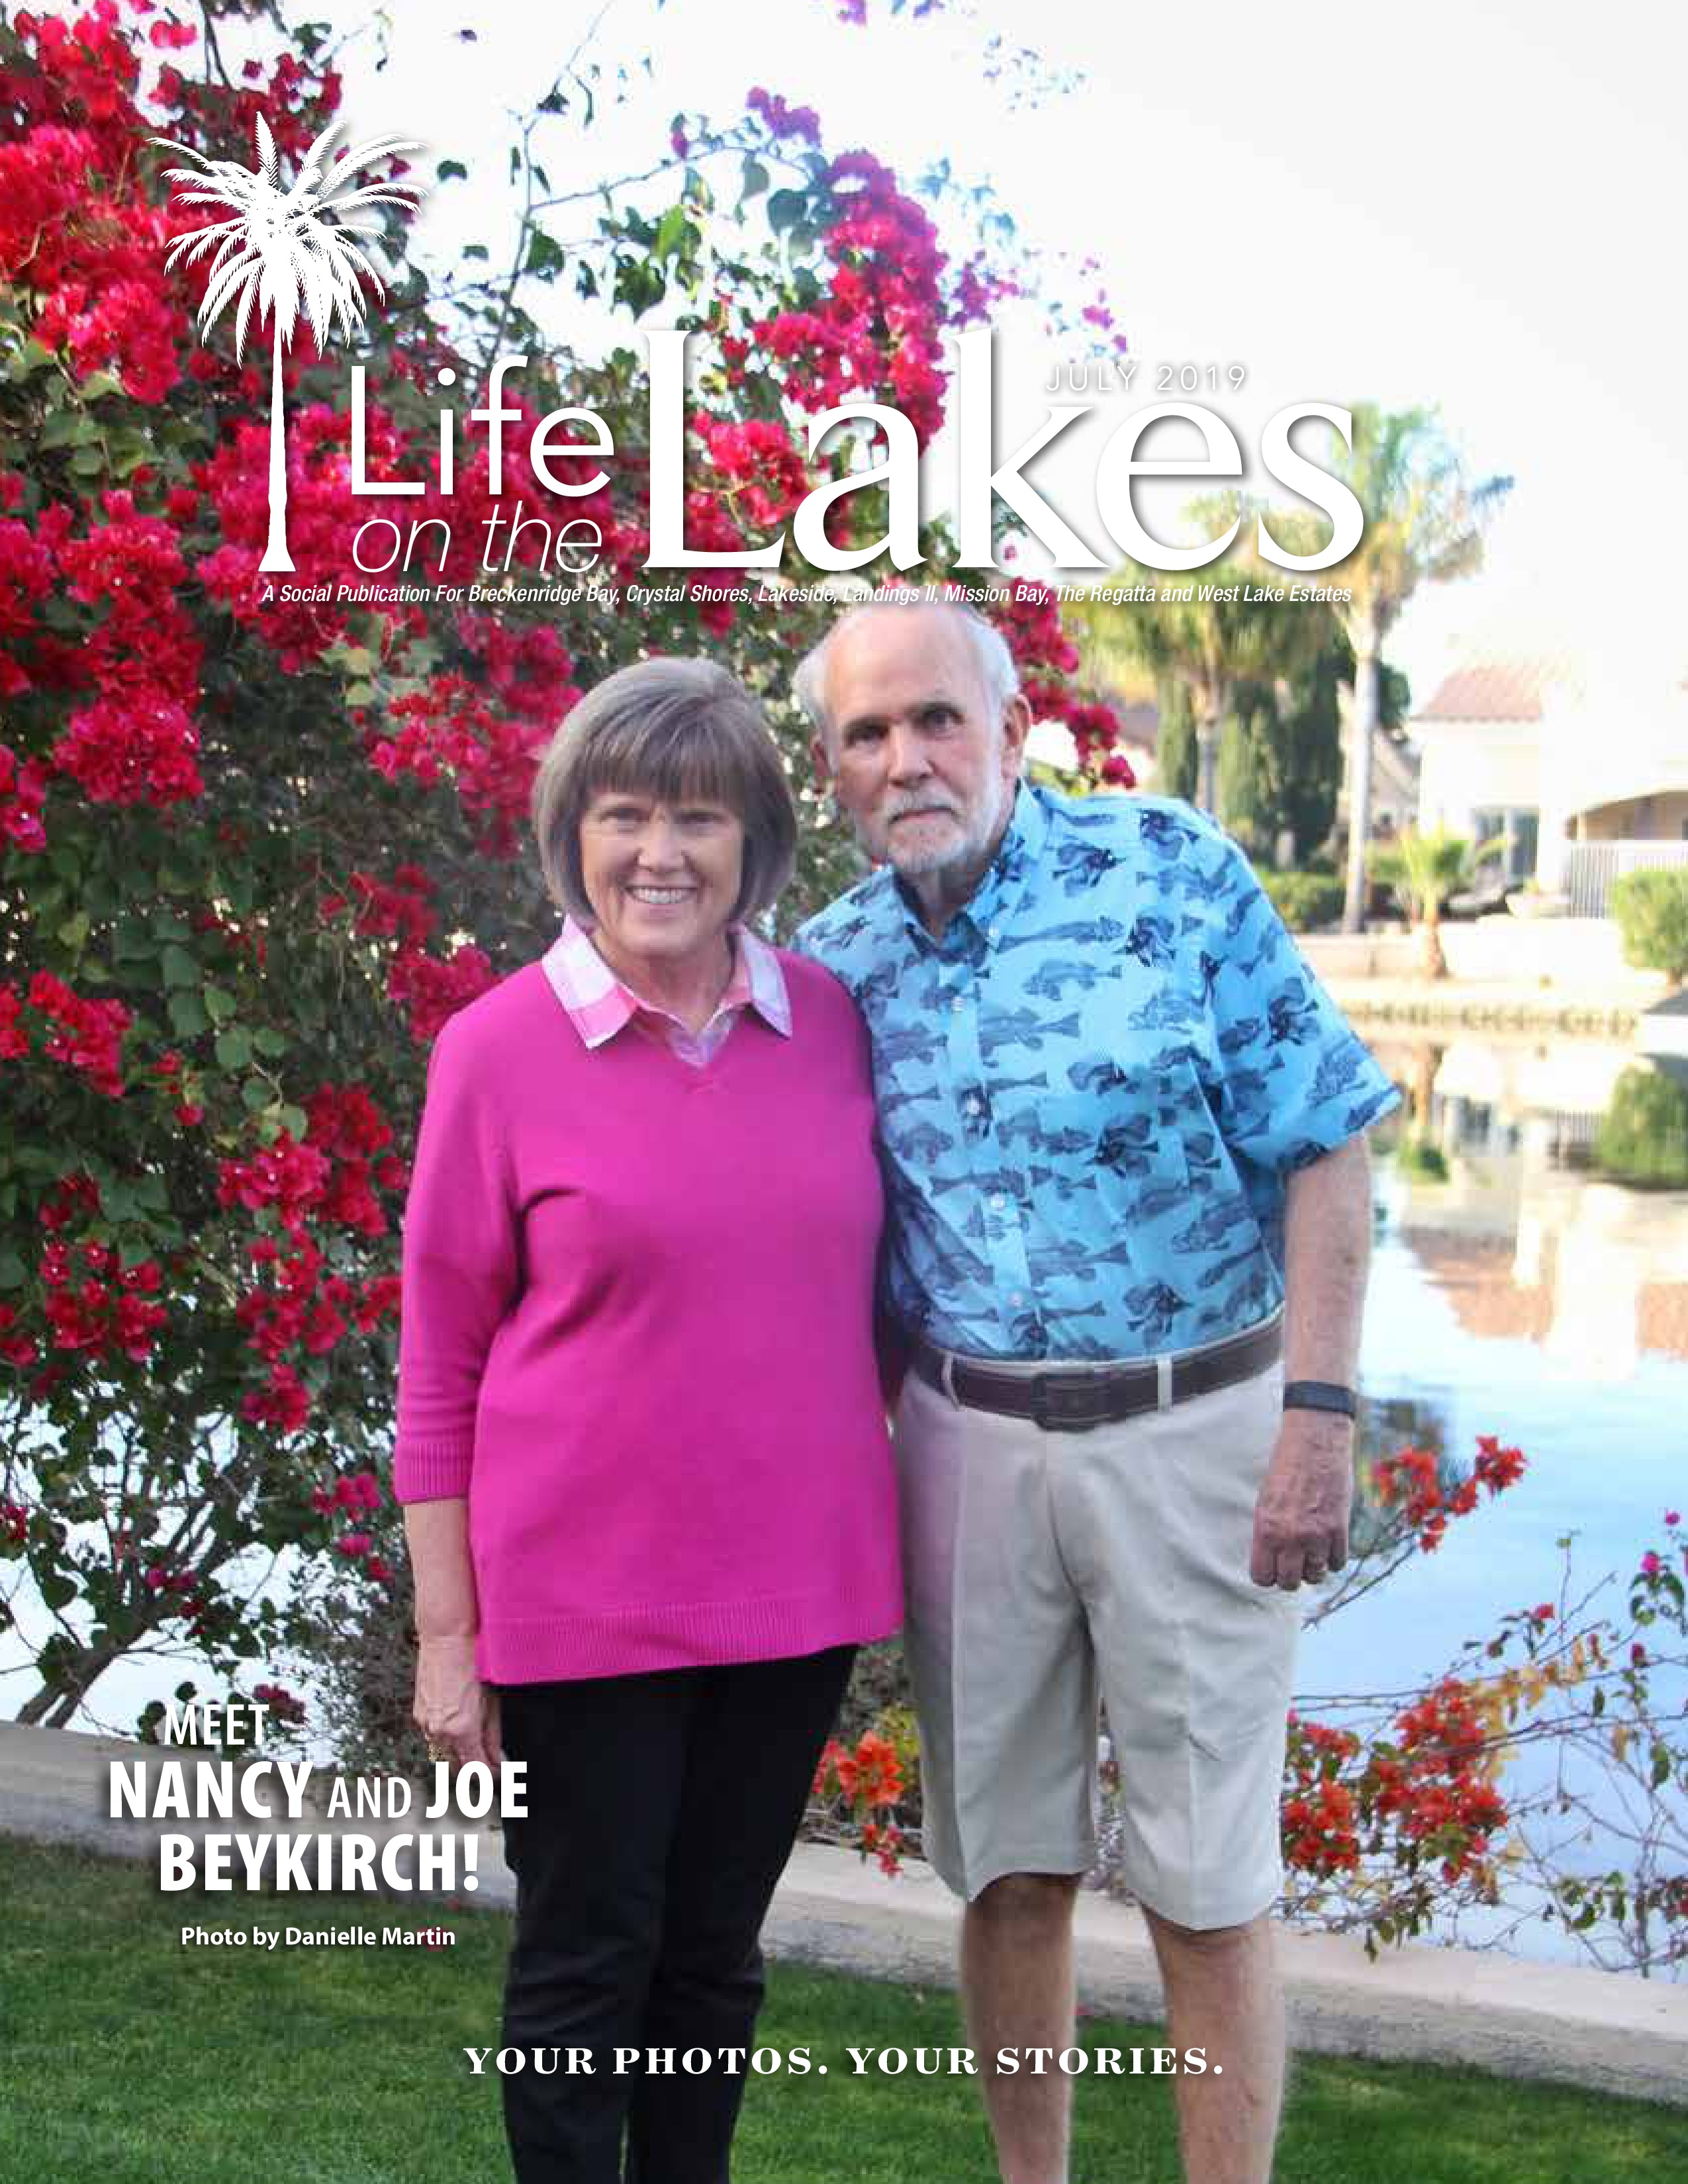 Jul 2019 life on the lakes page 1